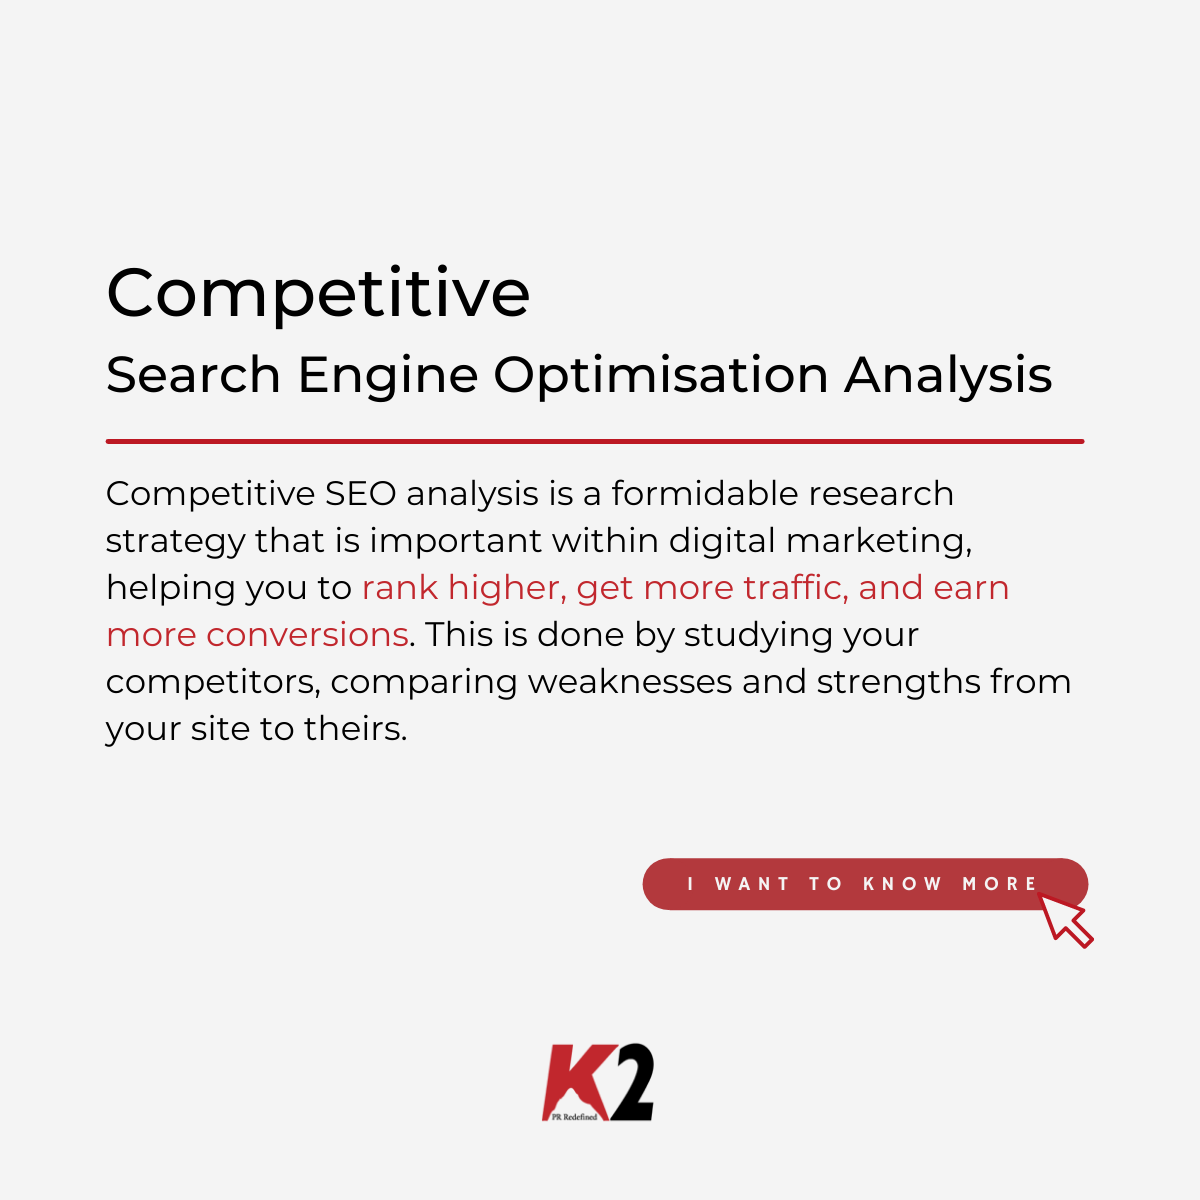 What is SEO Analysis?